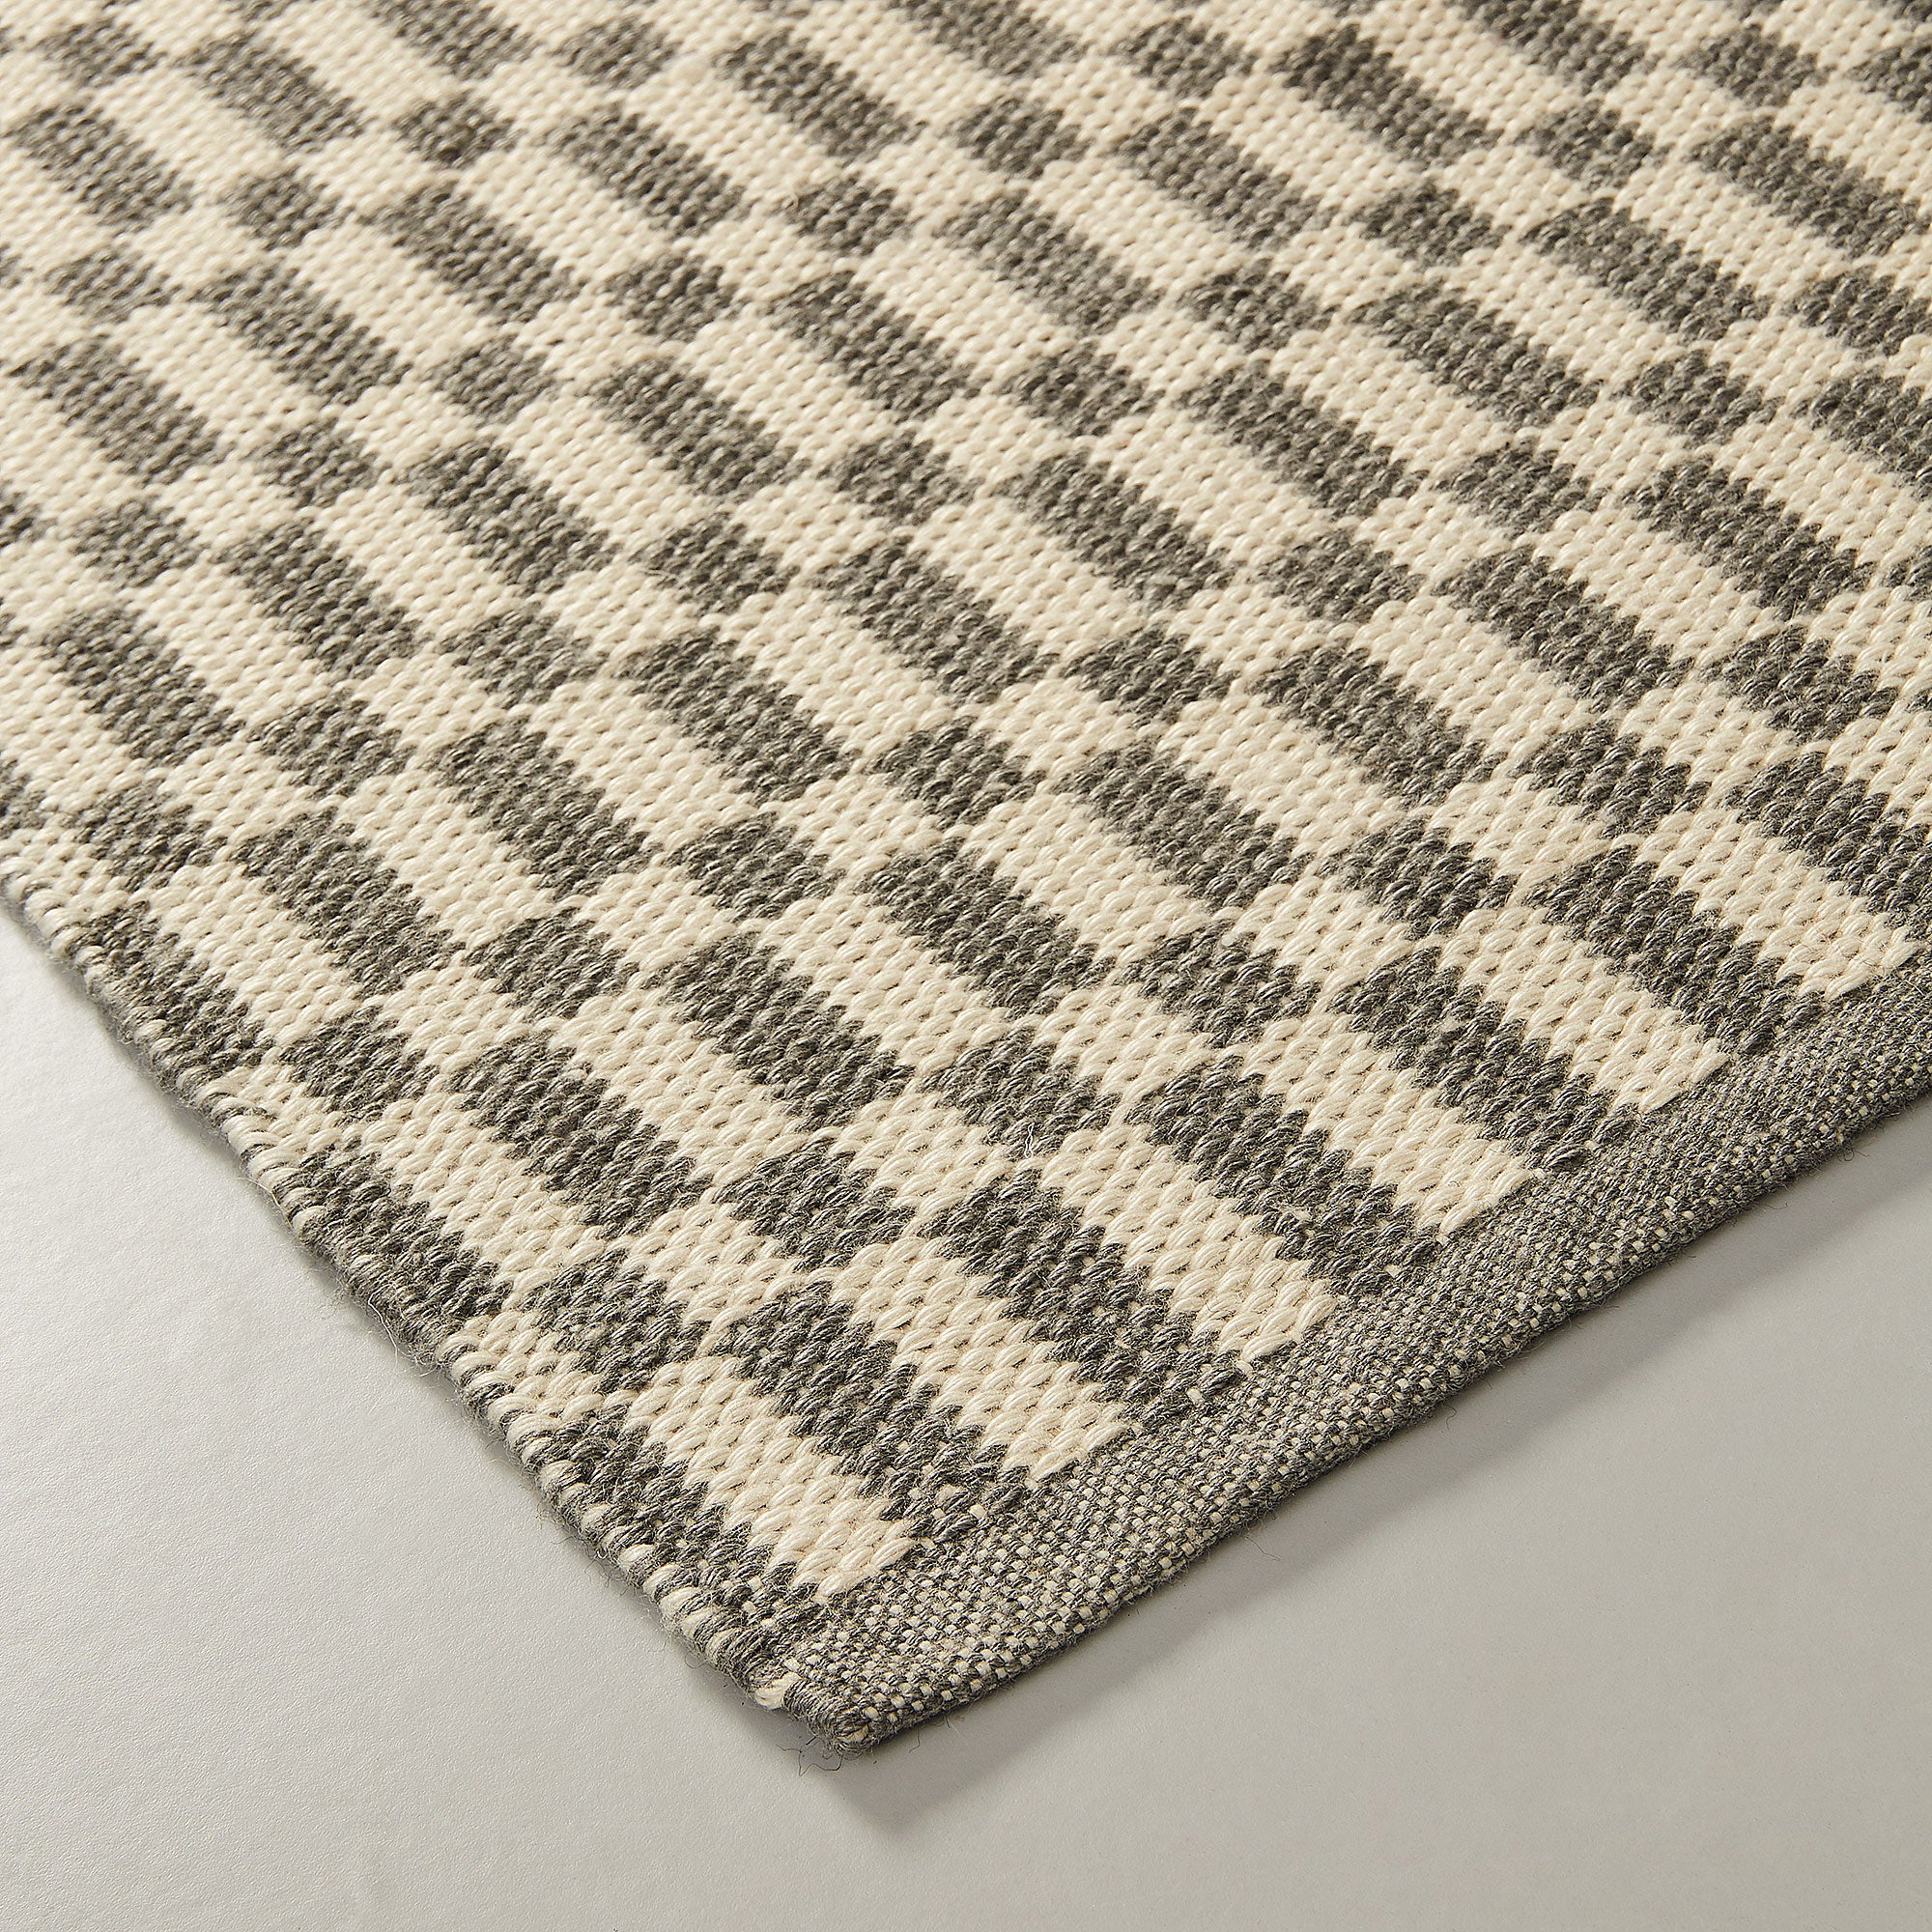 Swarna Rug - Two-tone Grey and Beige Pattern 130 x 190 cm, Rug - Home-Buy Interiors